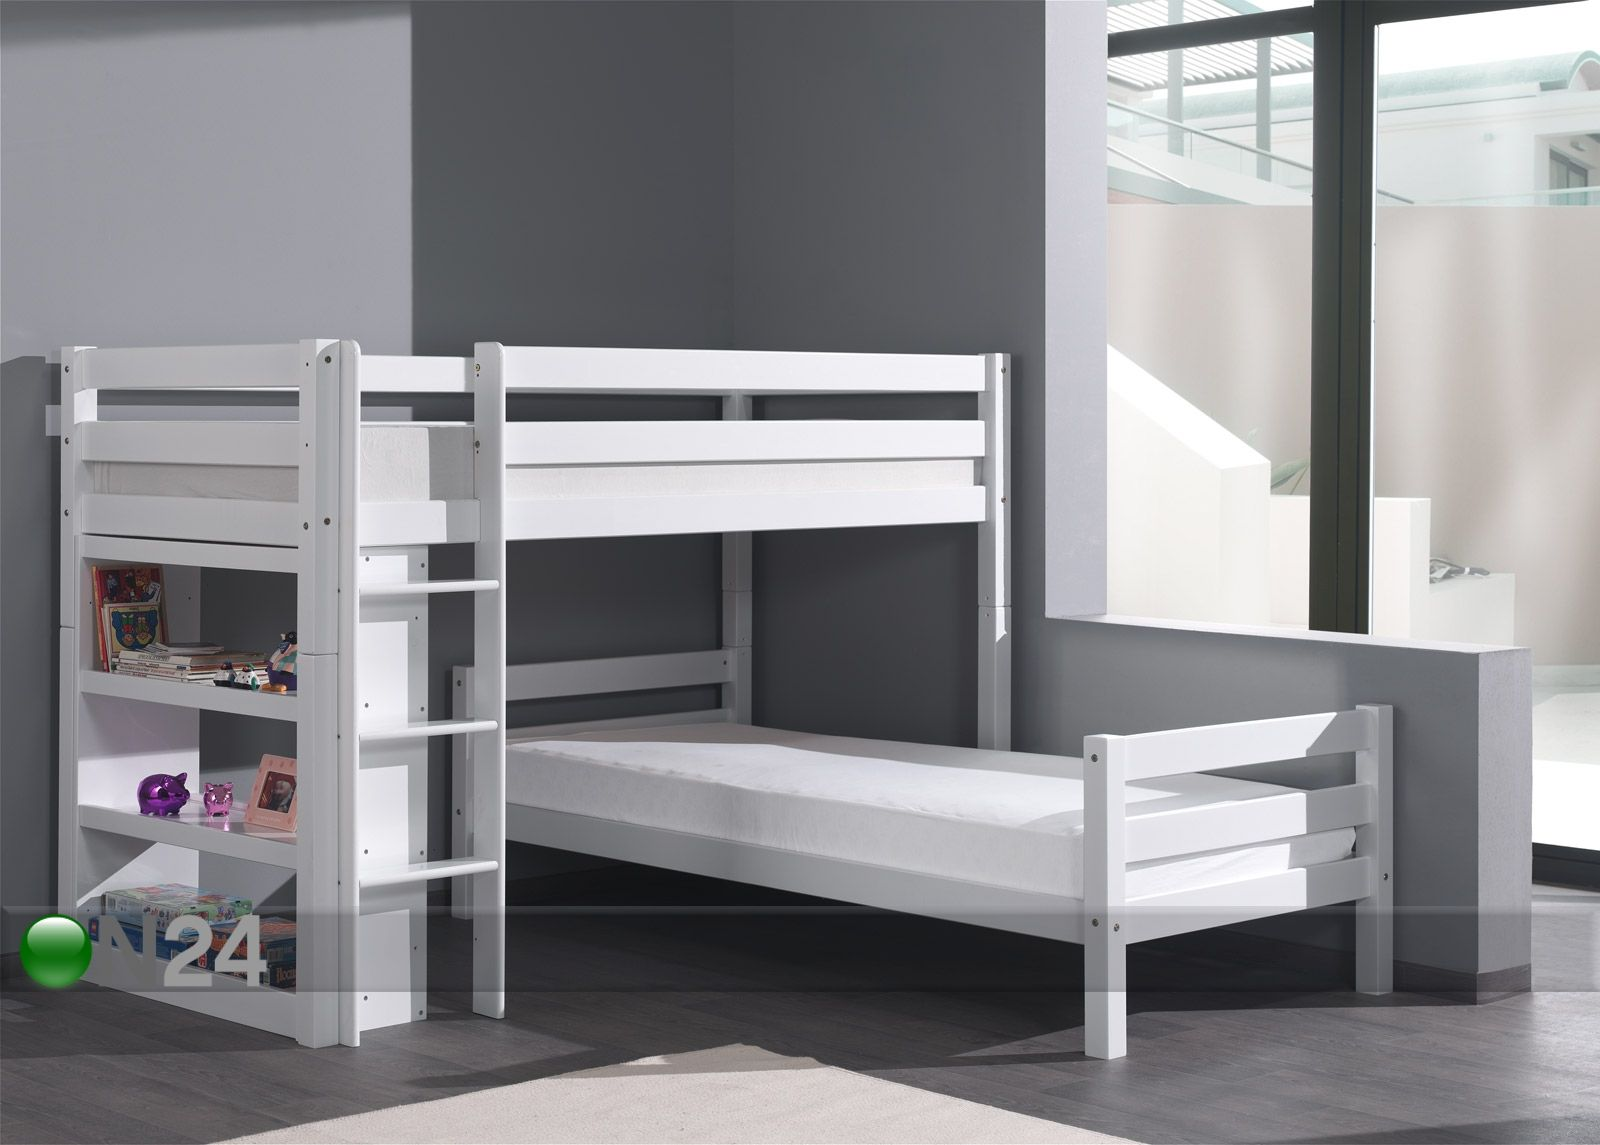 corner bunk bed kerross nky forrest py kki 90x200 cm aq 51935 on24 sisustustavaratalo. Black Bedroom Furniture Sets. Home Design Ideas